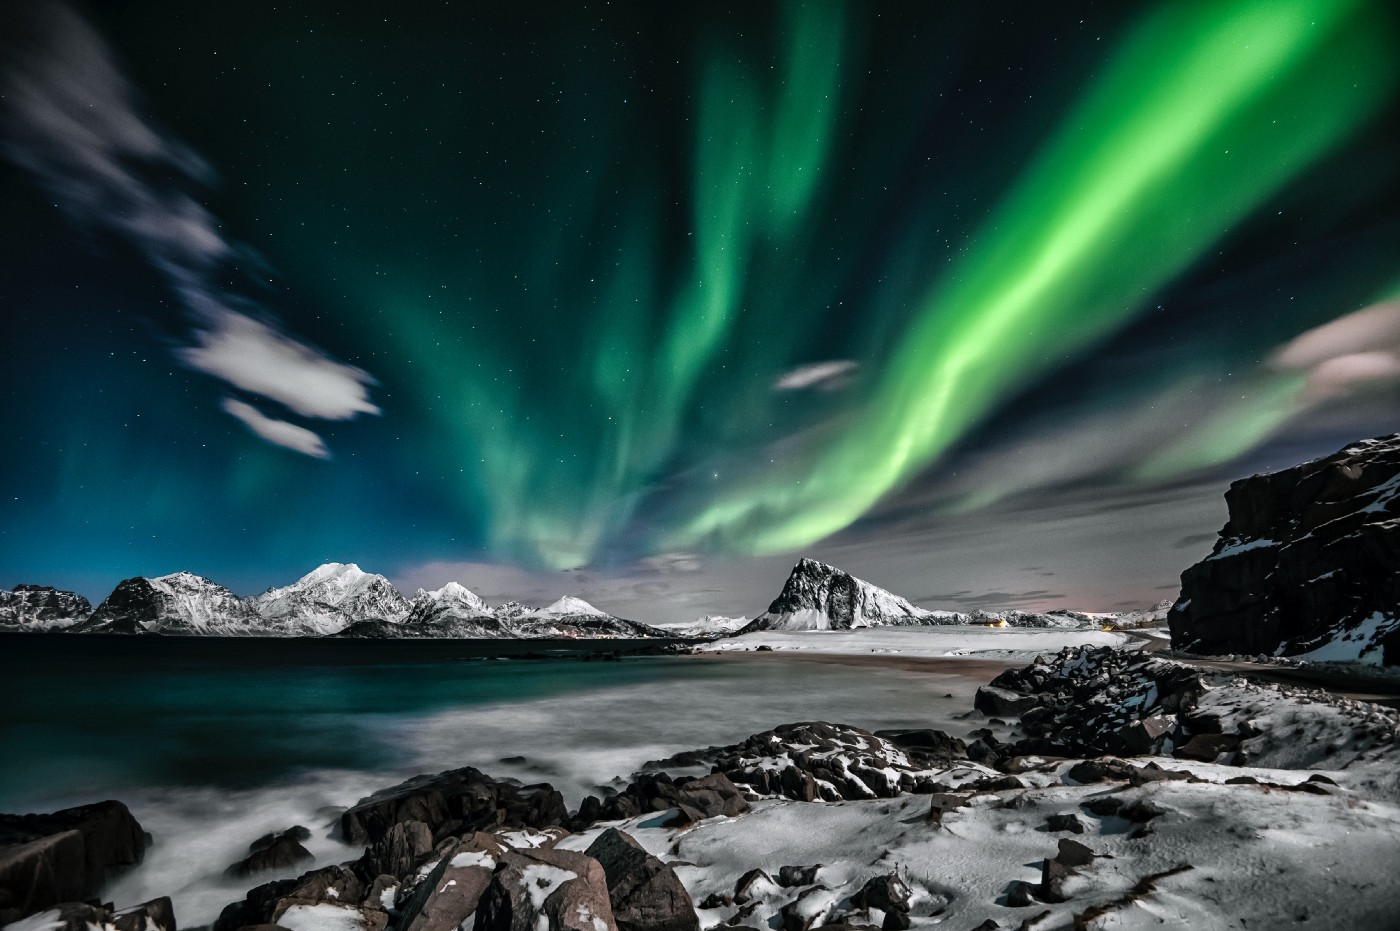 The Northern Lights with a body of water and mountains in the background